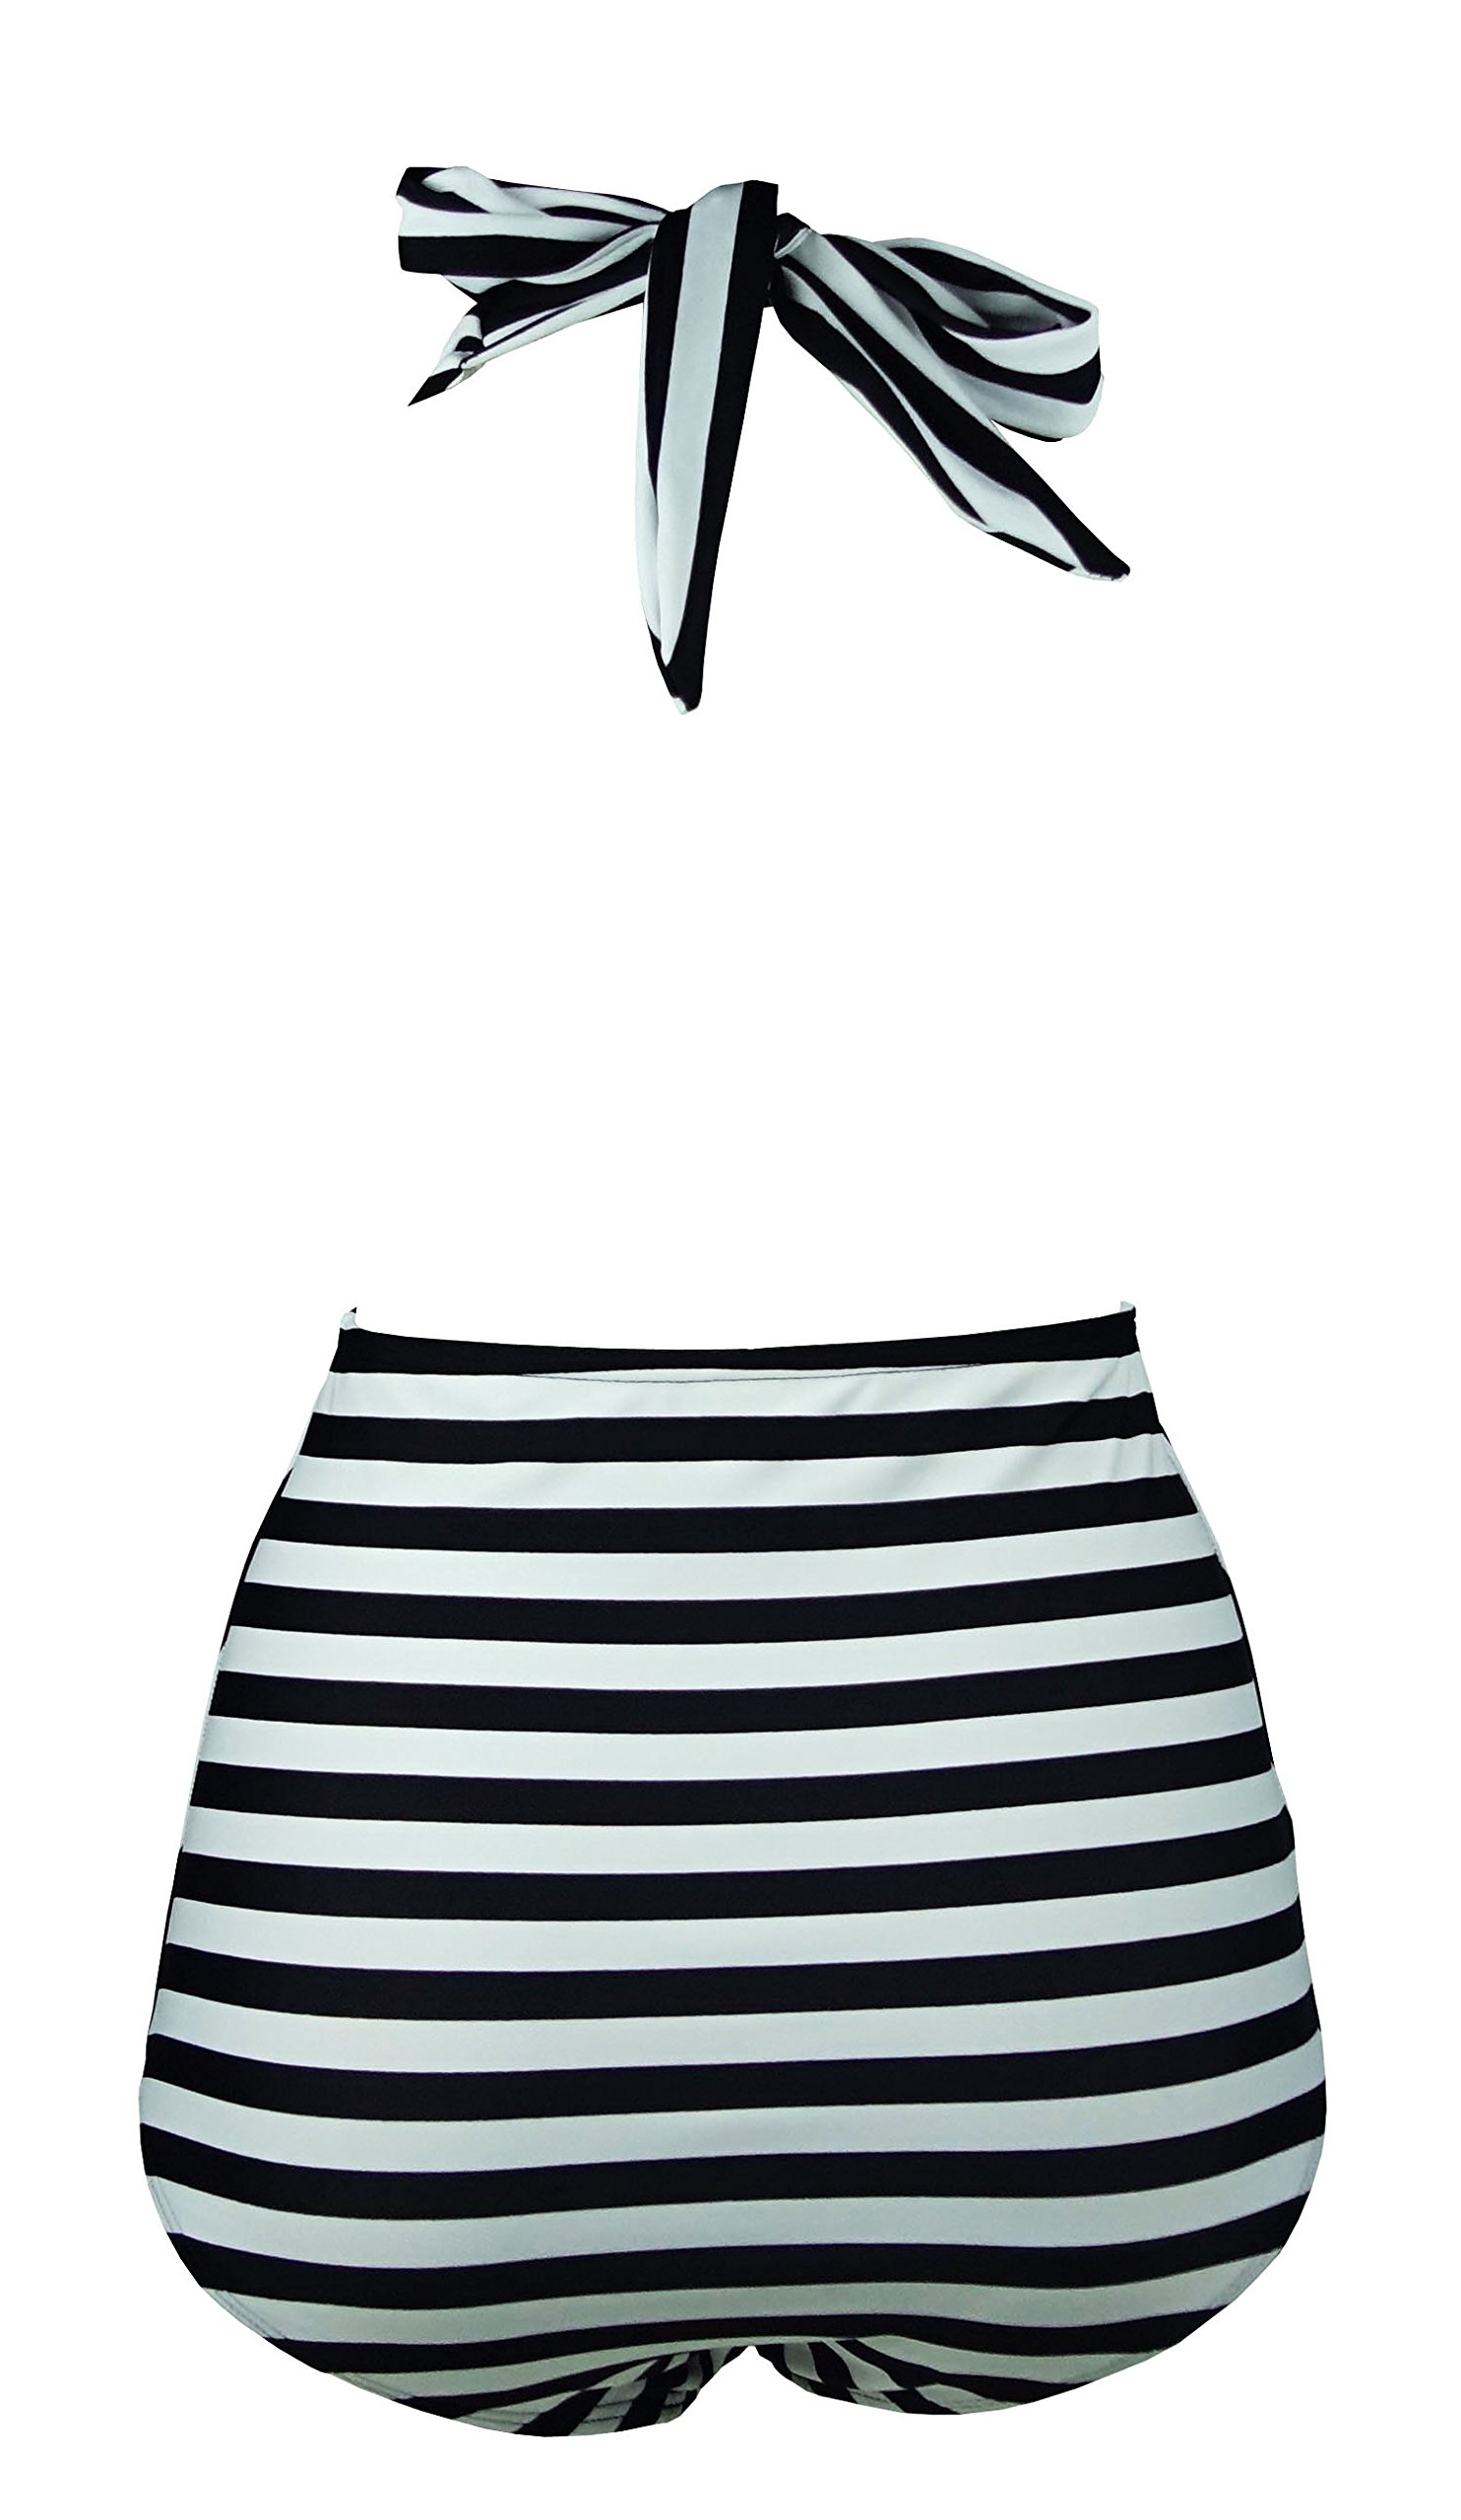 a8fa8ed41 COCOSHIP Black & White Striped Retro One Piece Backless Bather Swimsuit  High Waisted Pin Up Swimwear